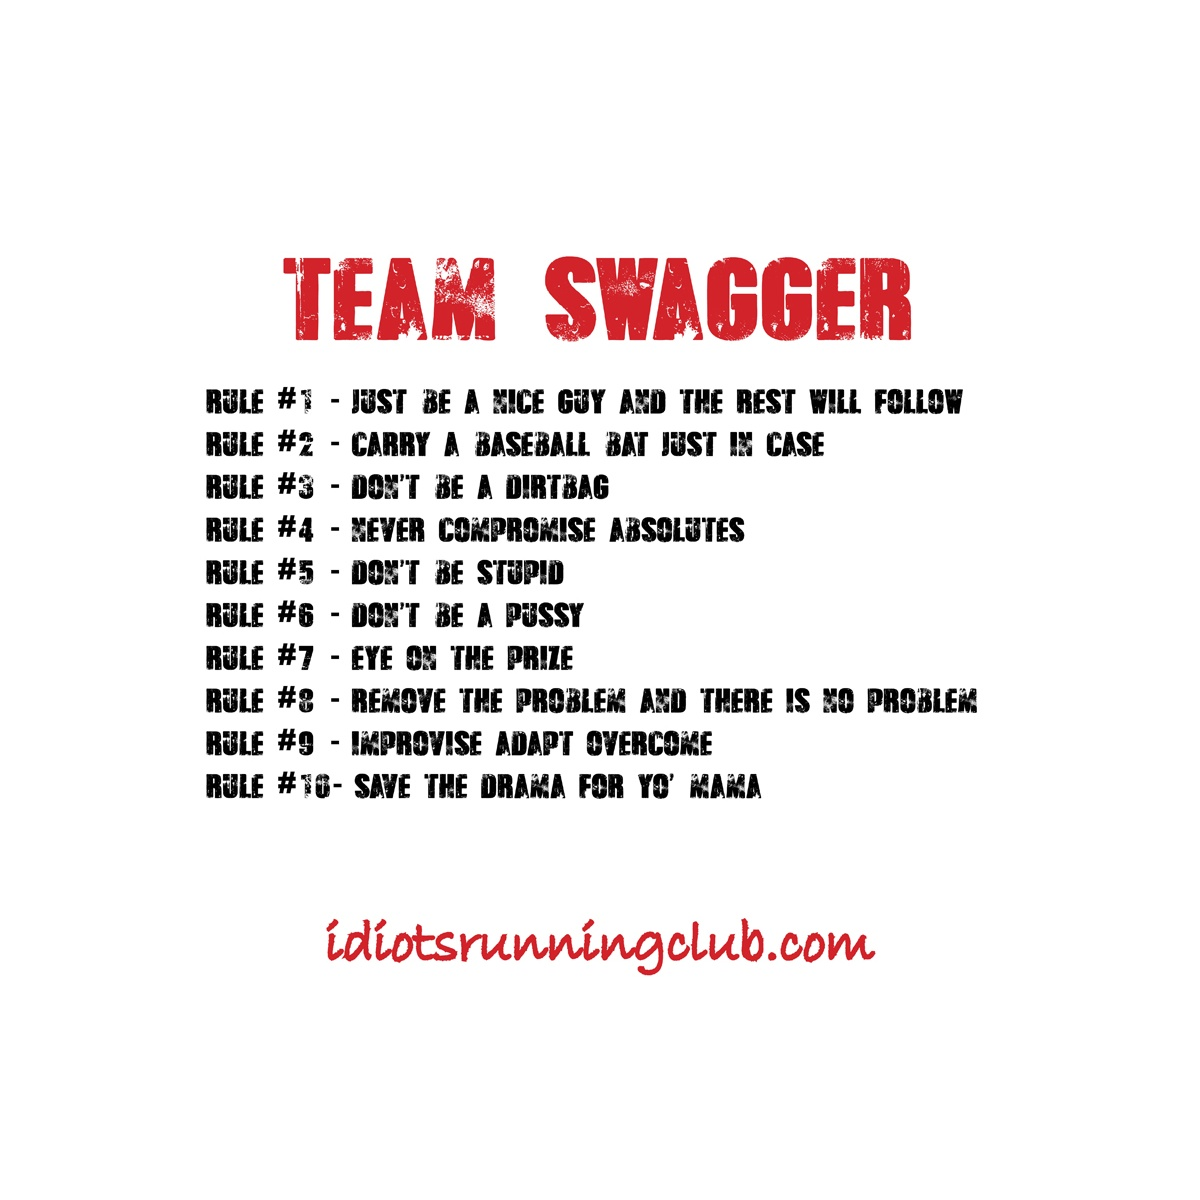 team_swagger_rules_959969440